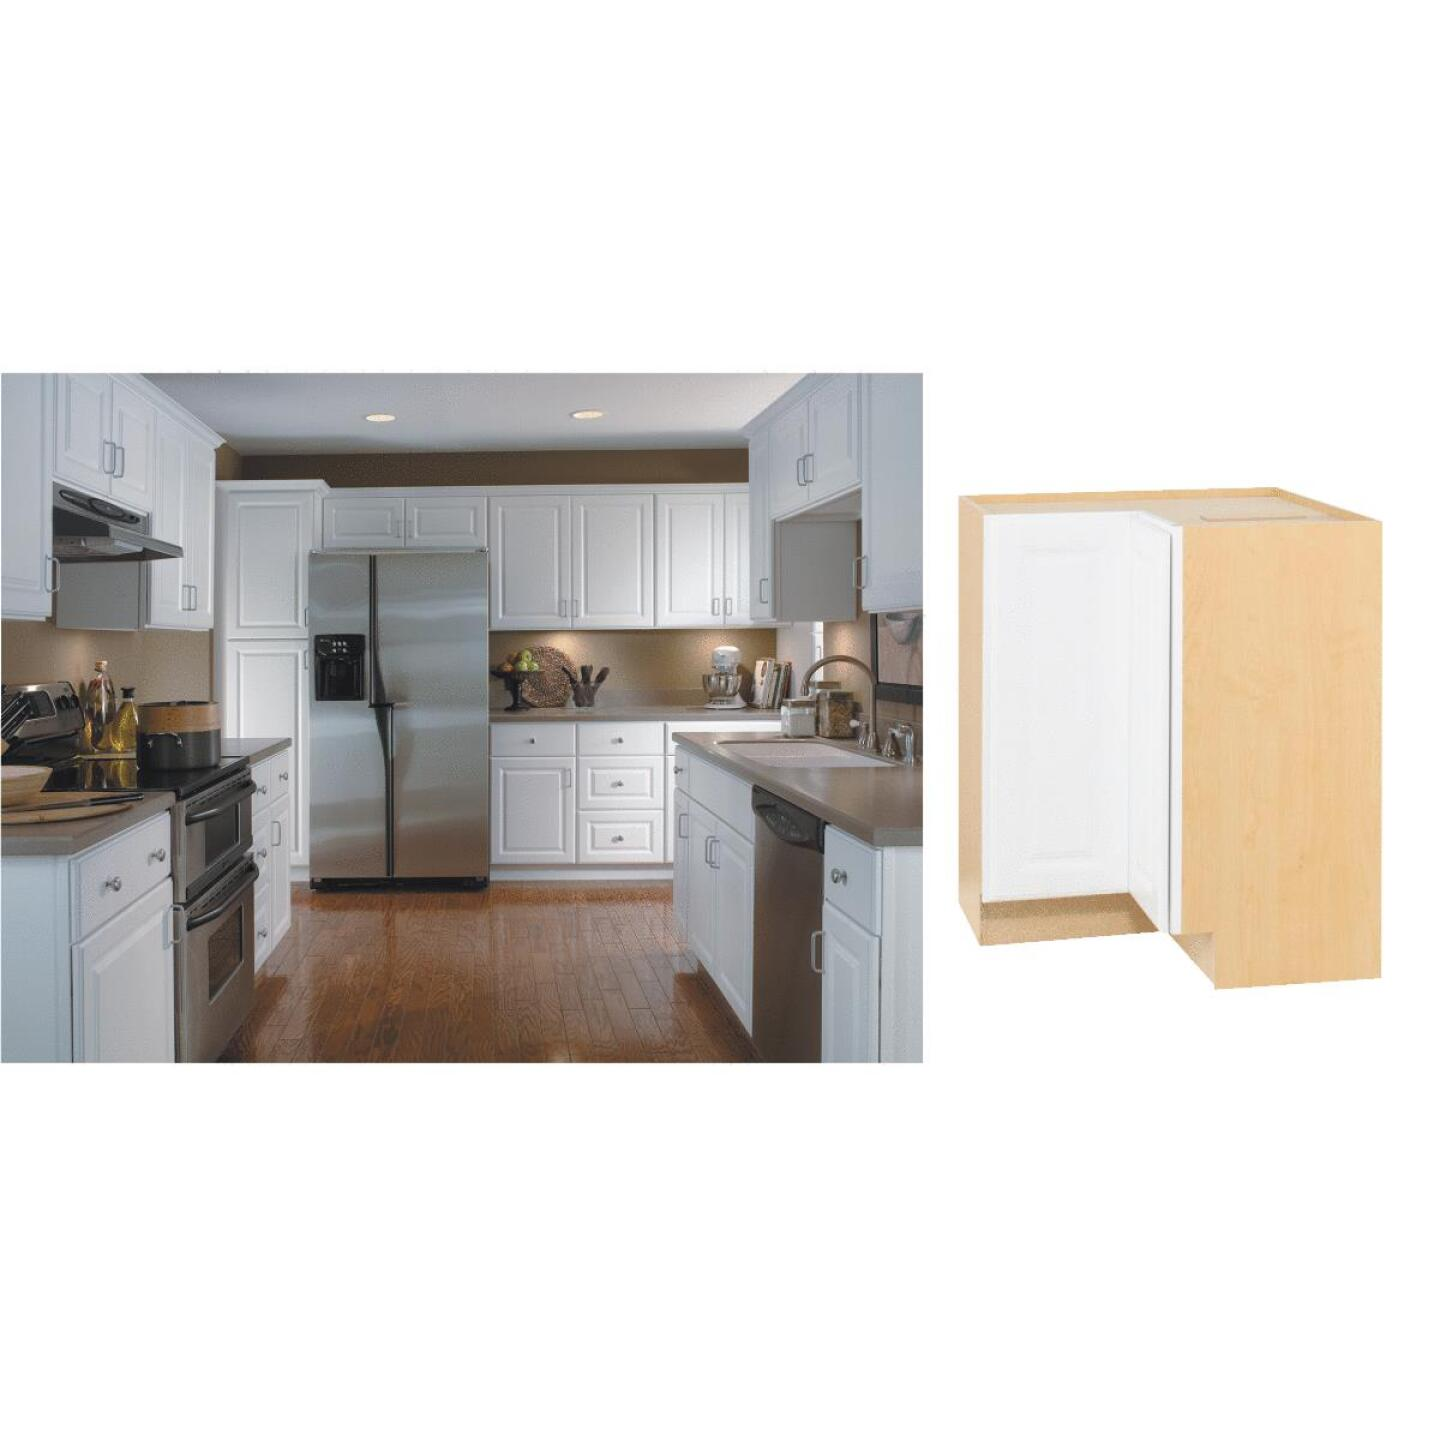 Continental Cabinets Hamilton 36 In. W x 34-1/2 In. H x 24 In. D Satin White Maple Lazy Susan Corner Base Kitchen Cabinet Image 1